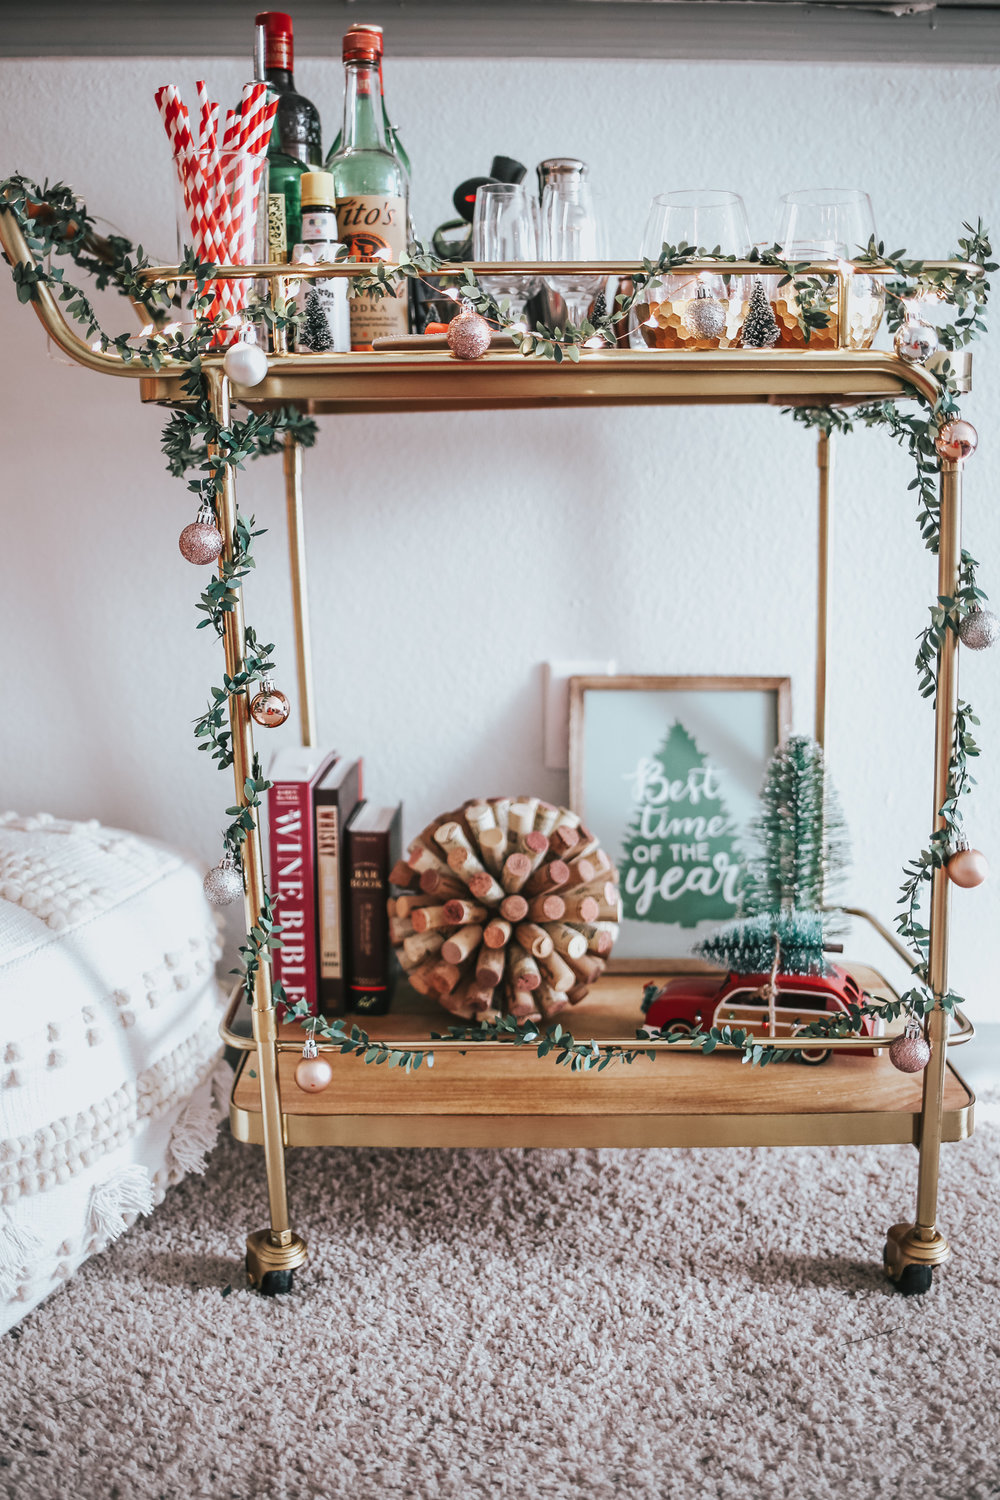 DECORATE THE CART WITH CHRISTMAS DECOR, A LETTER BOARD SIGN WITH YOUR FAVORITE CHRISTMAS MOVIE QUOTES, BOTTLE BRUSH TREES AND MORE!